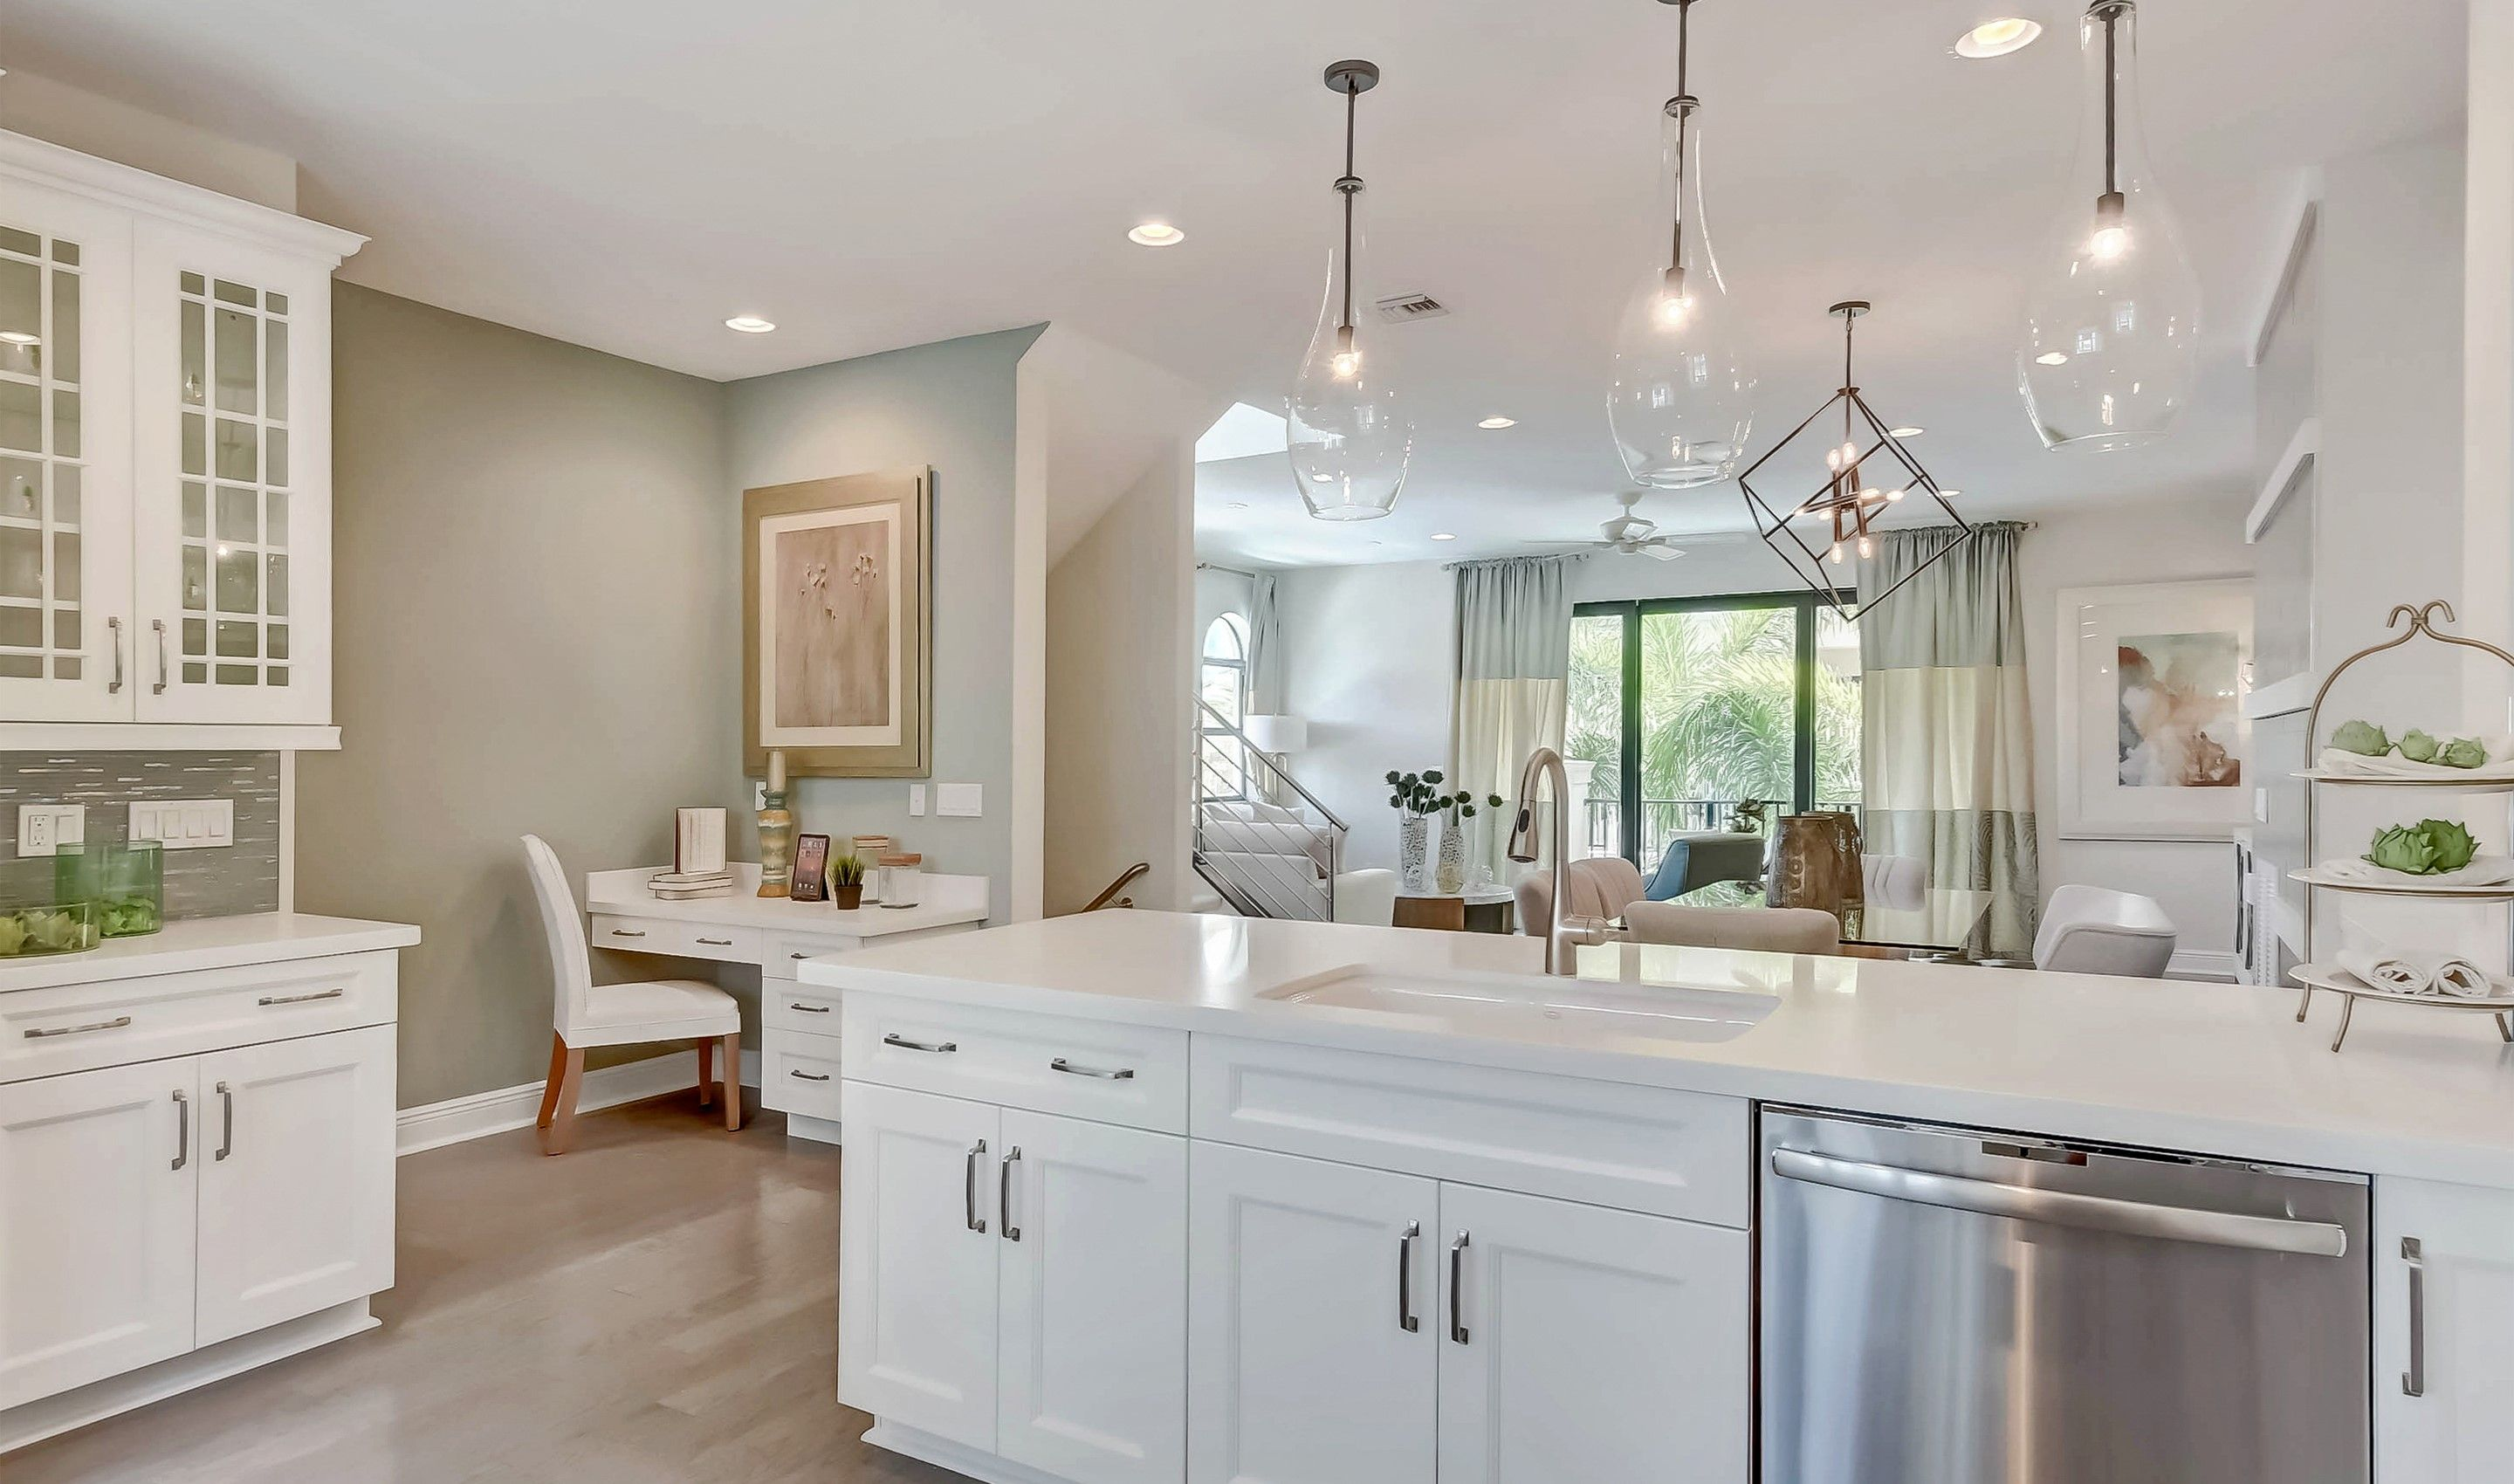 Kitchen featured in the Bonnett II - Townhome By K. Hovnanian® Homes in Palm Beach County, FL